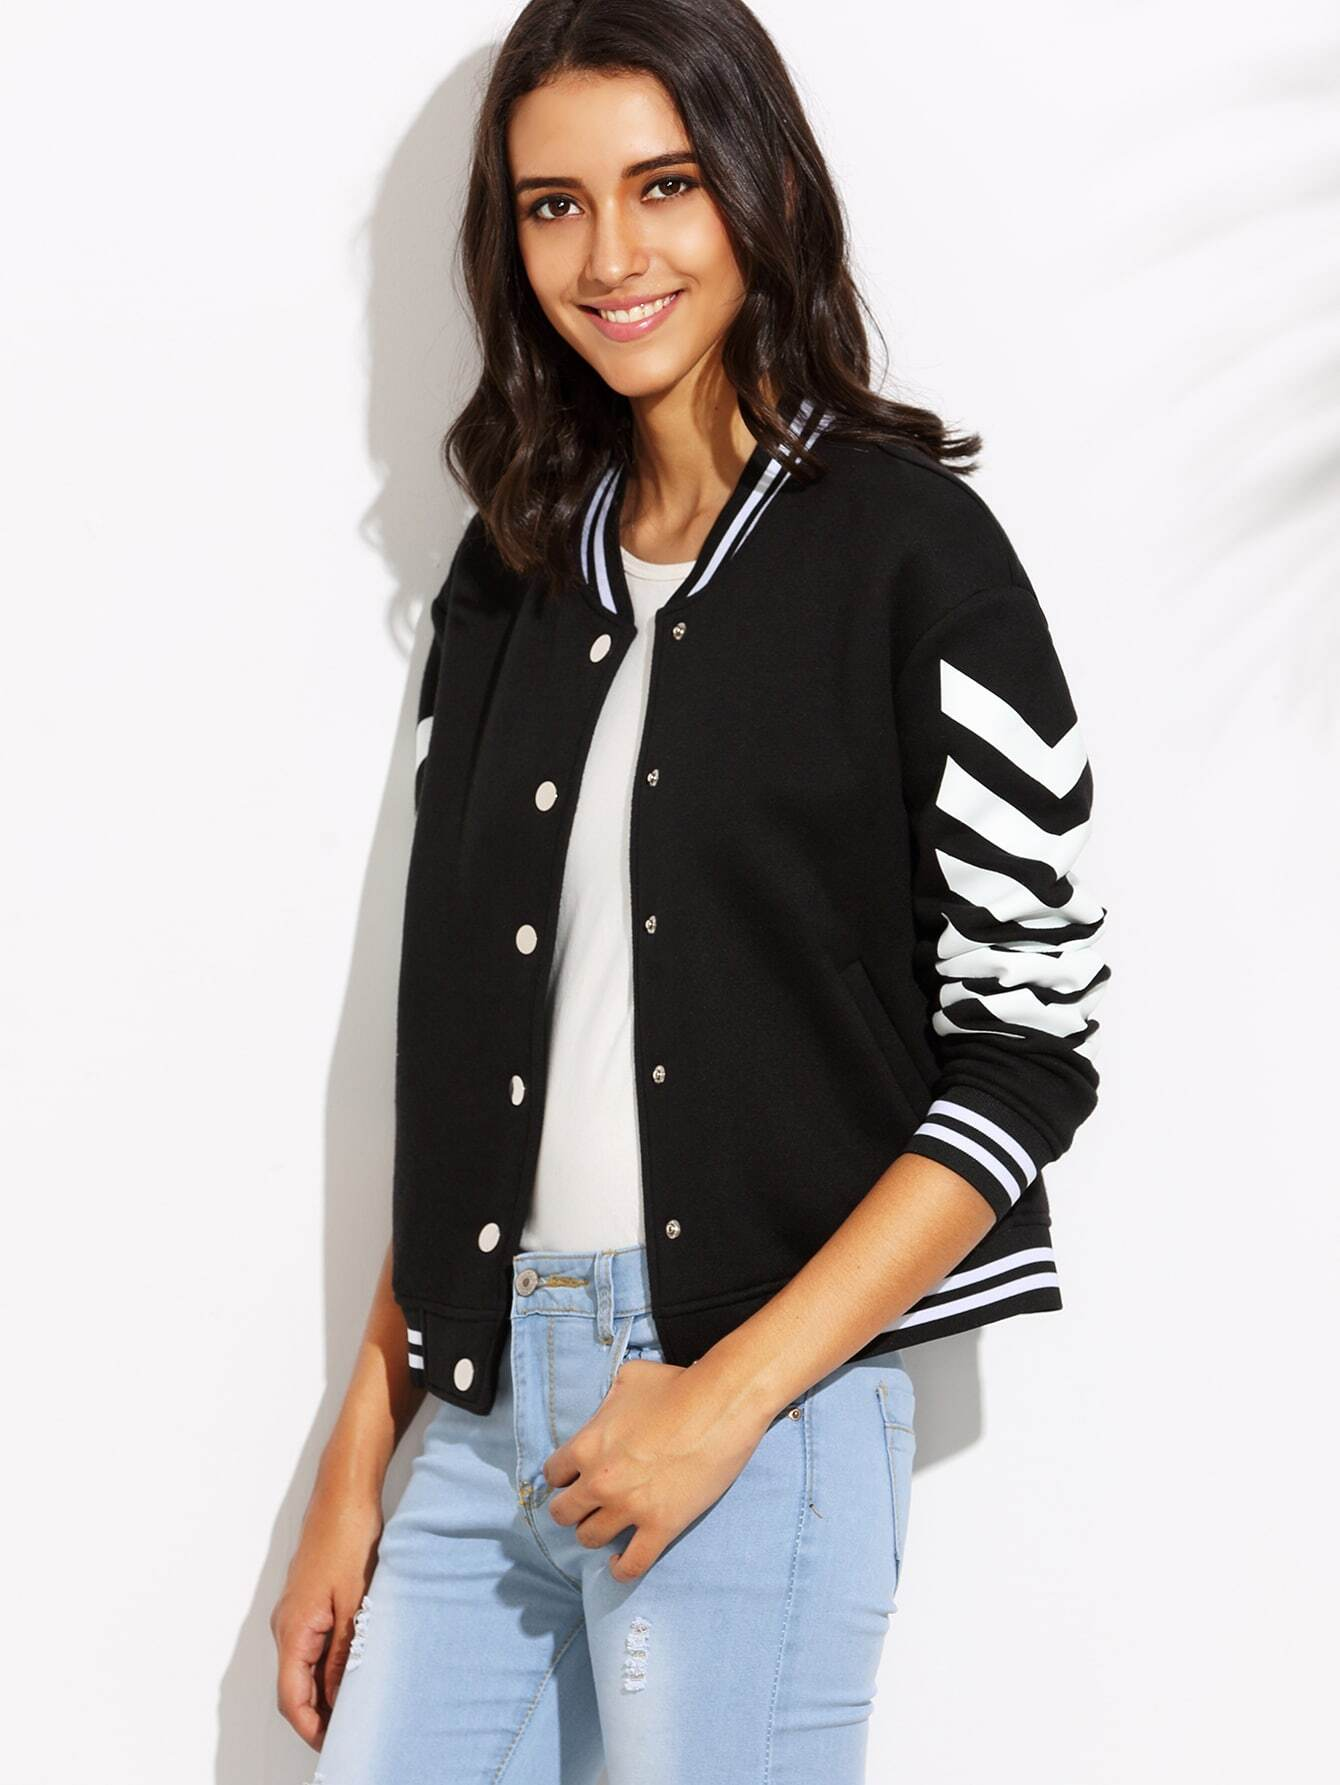 Black Chevron Print Striped Trim Baseball JacketBlack Chevron Print Striped Trim Baseball Jacket<br><br>color: Black<br>size: L,M,S,XS